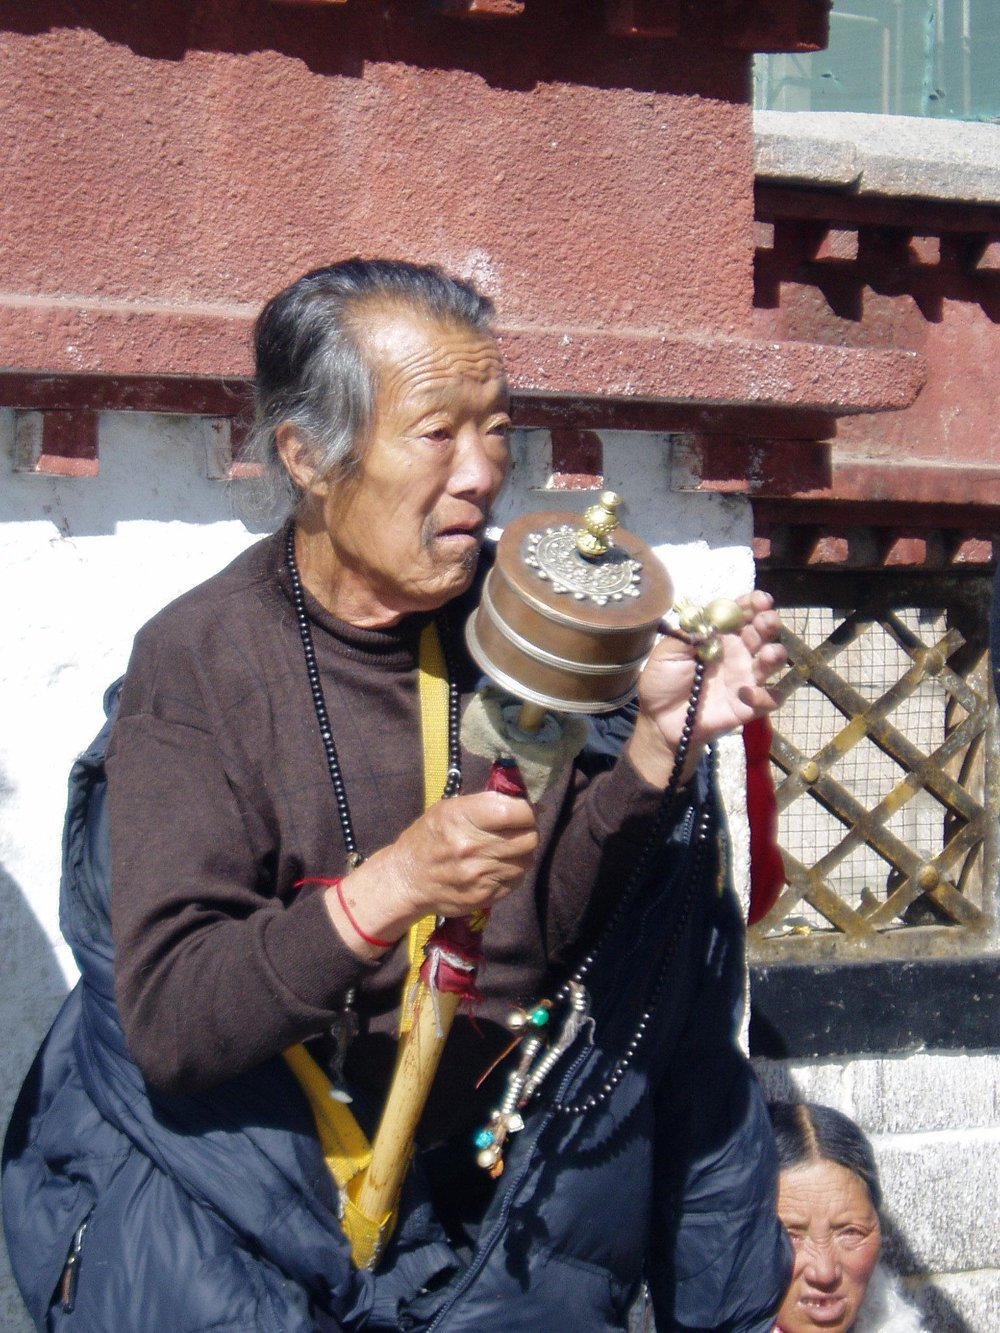 A persecuted Tibetan living in Tibet.  Photo by Elaine Jean Cooper.